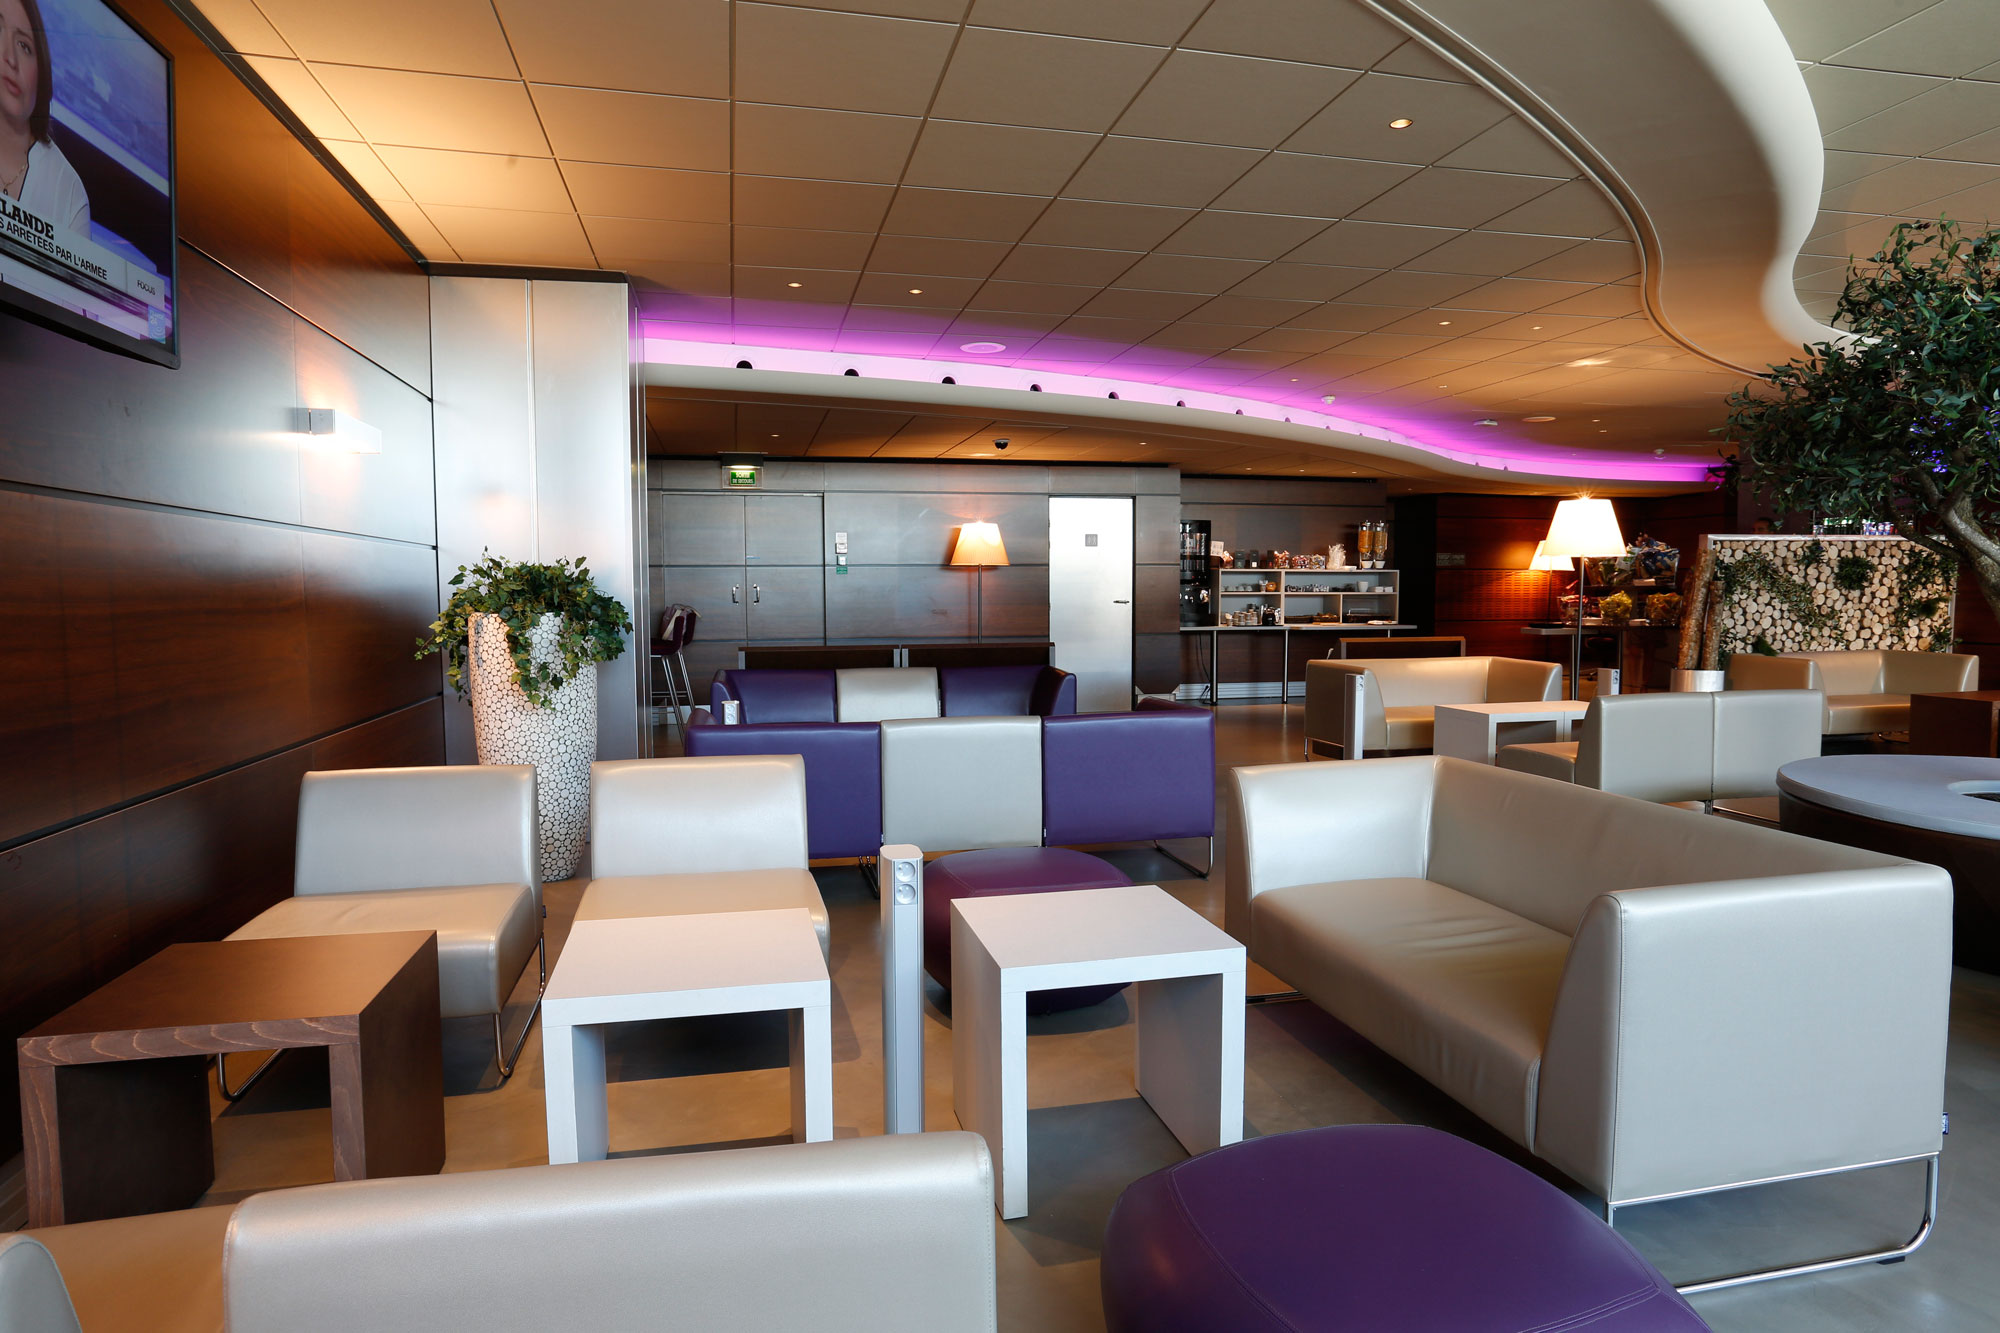 Aeroport-marseille-mobilari-contract-silleria-verges-